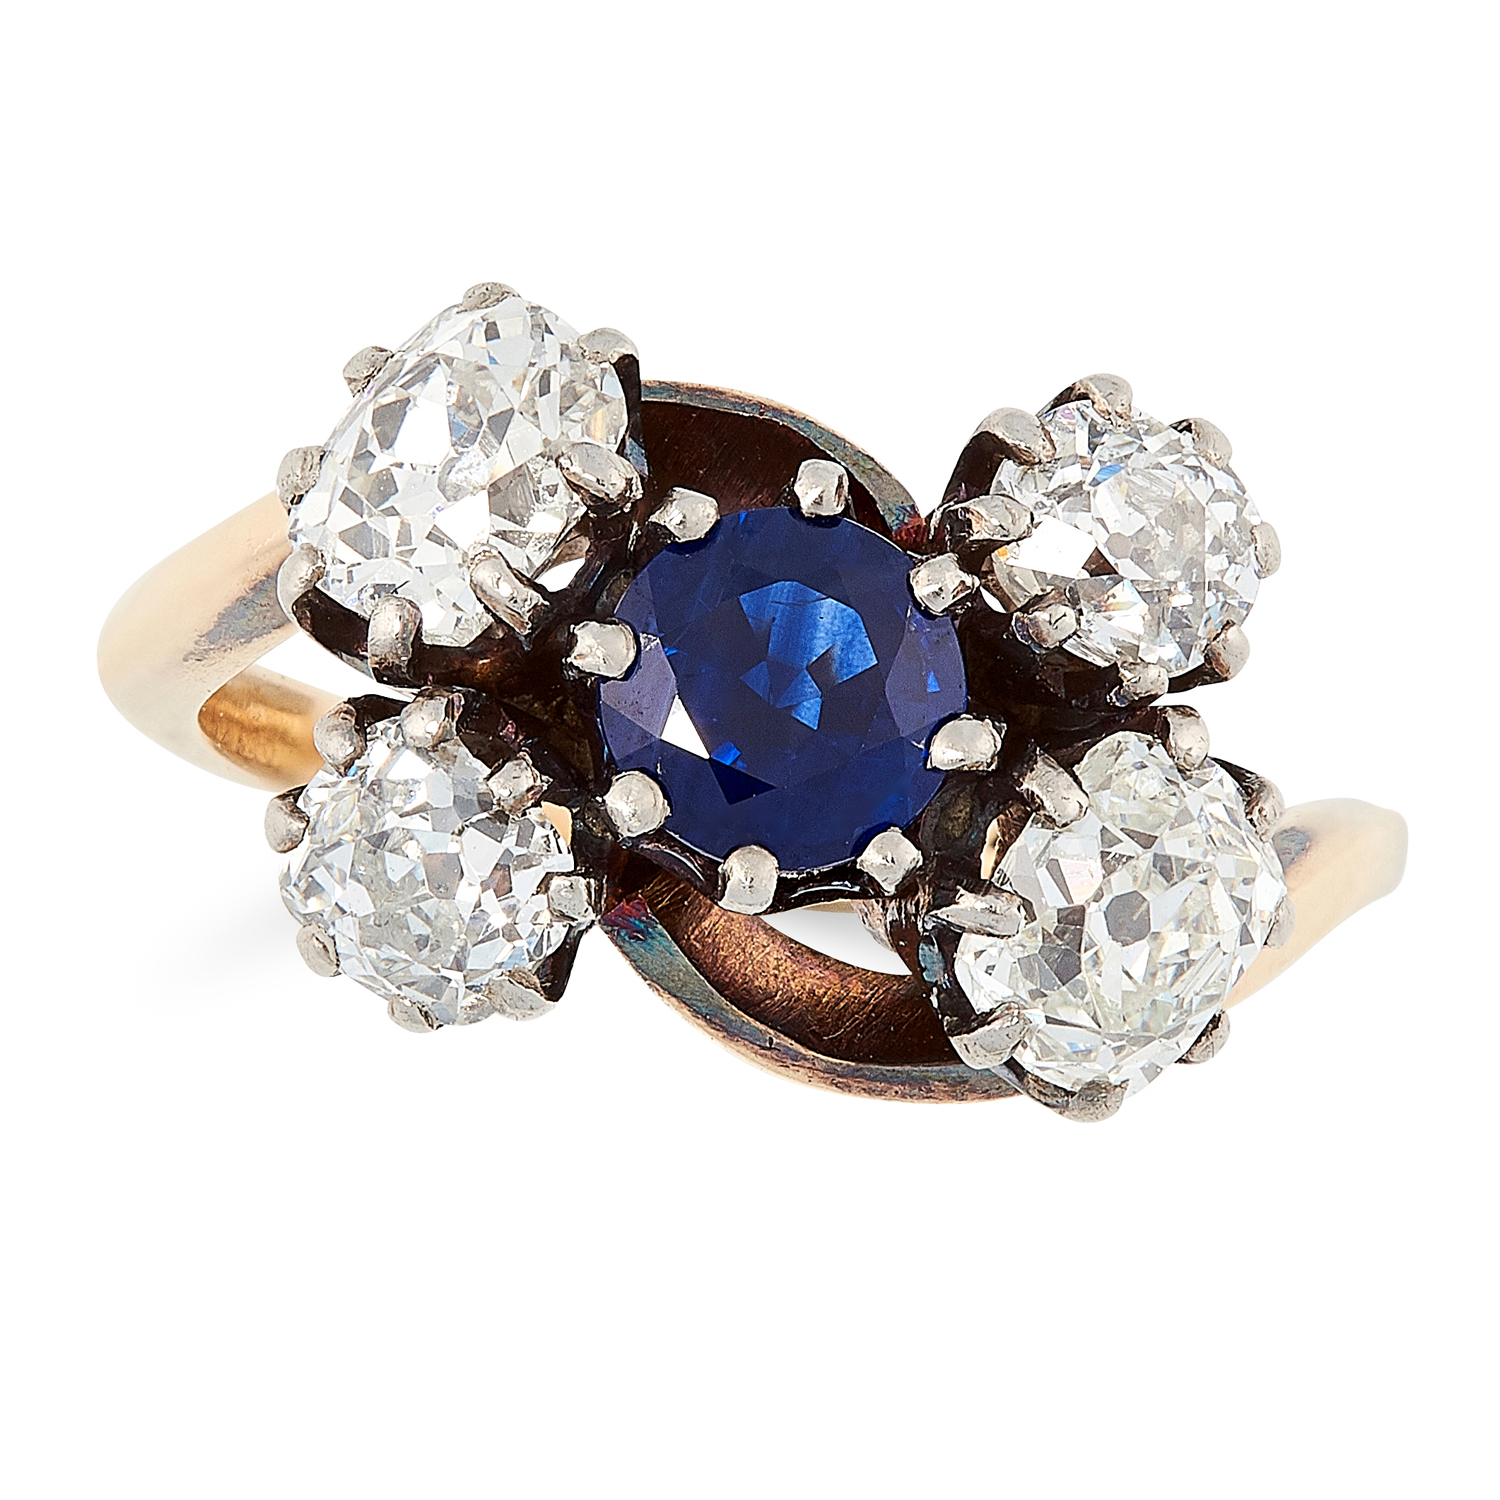 ANTIQUE SAPPHIRE AND DIAMOND RING in 18ct yellow gold, set with a round cut sapphire in a border